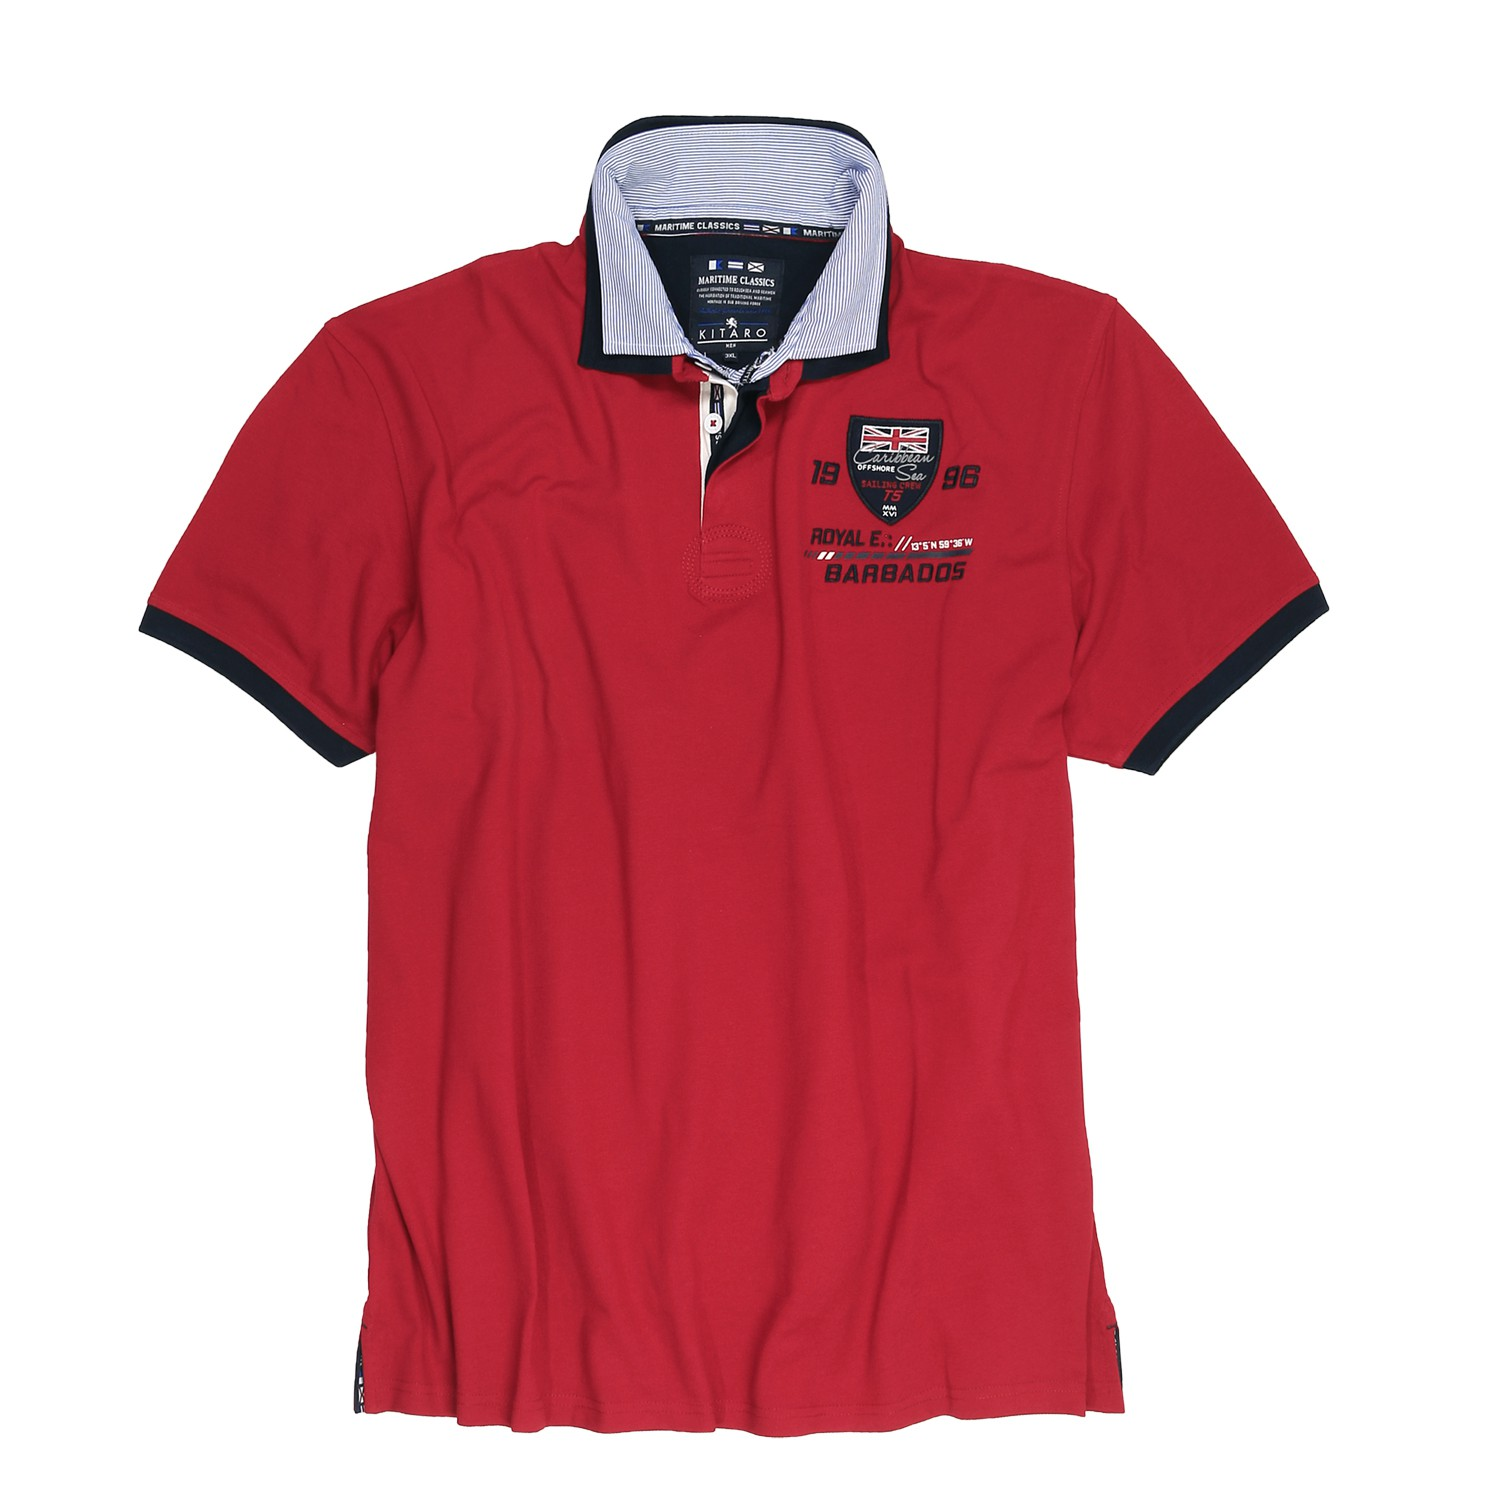 Detail Image to Red polo shirt by Kitaro in extra large sizes up to 8XL